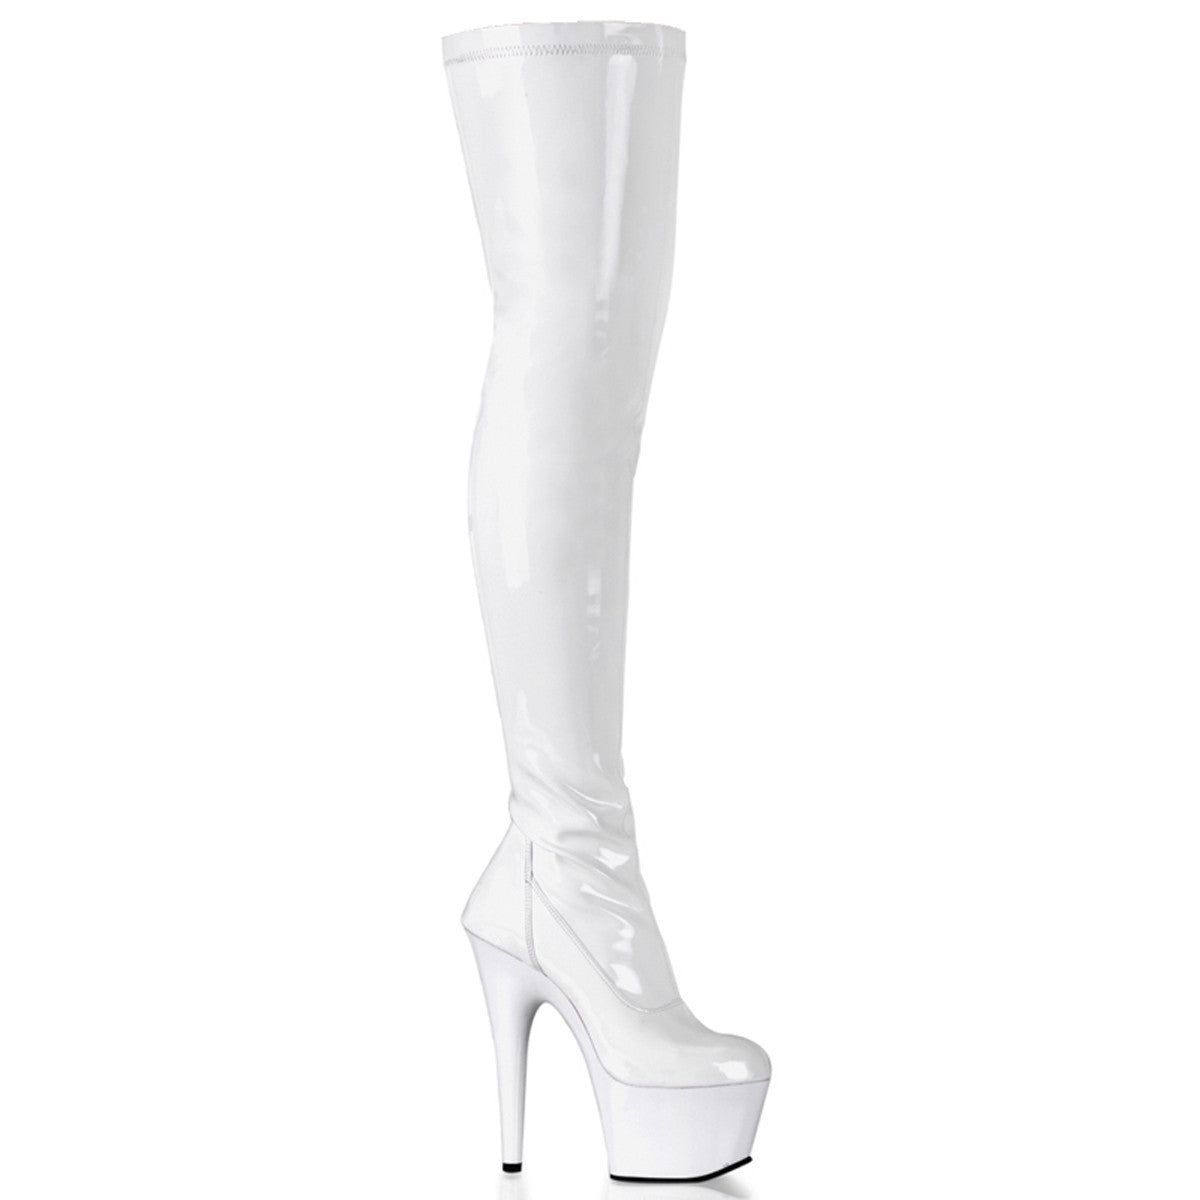 "7"" Plain Stretch Thigh Boots ADORE3000"